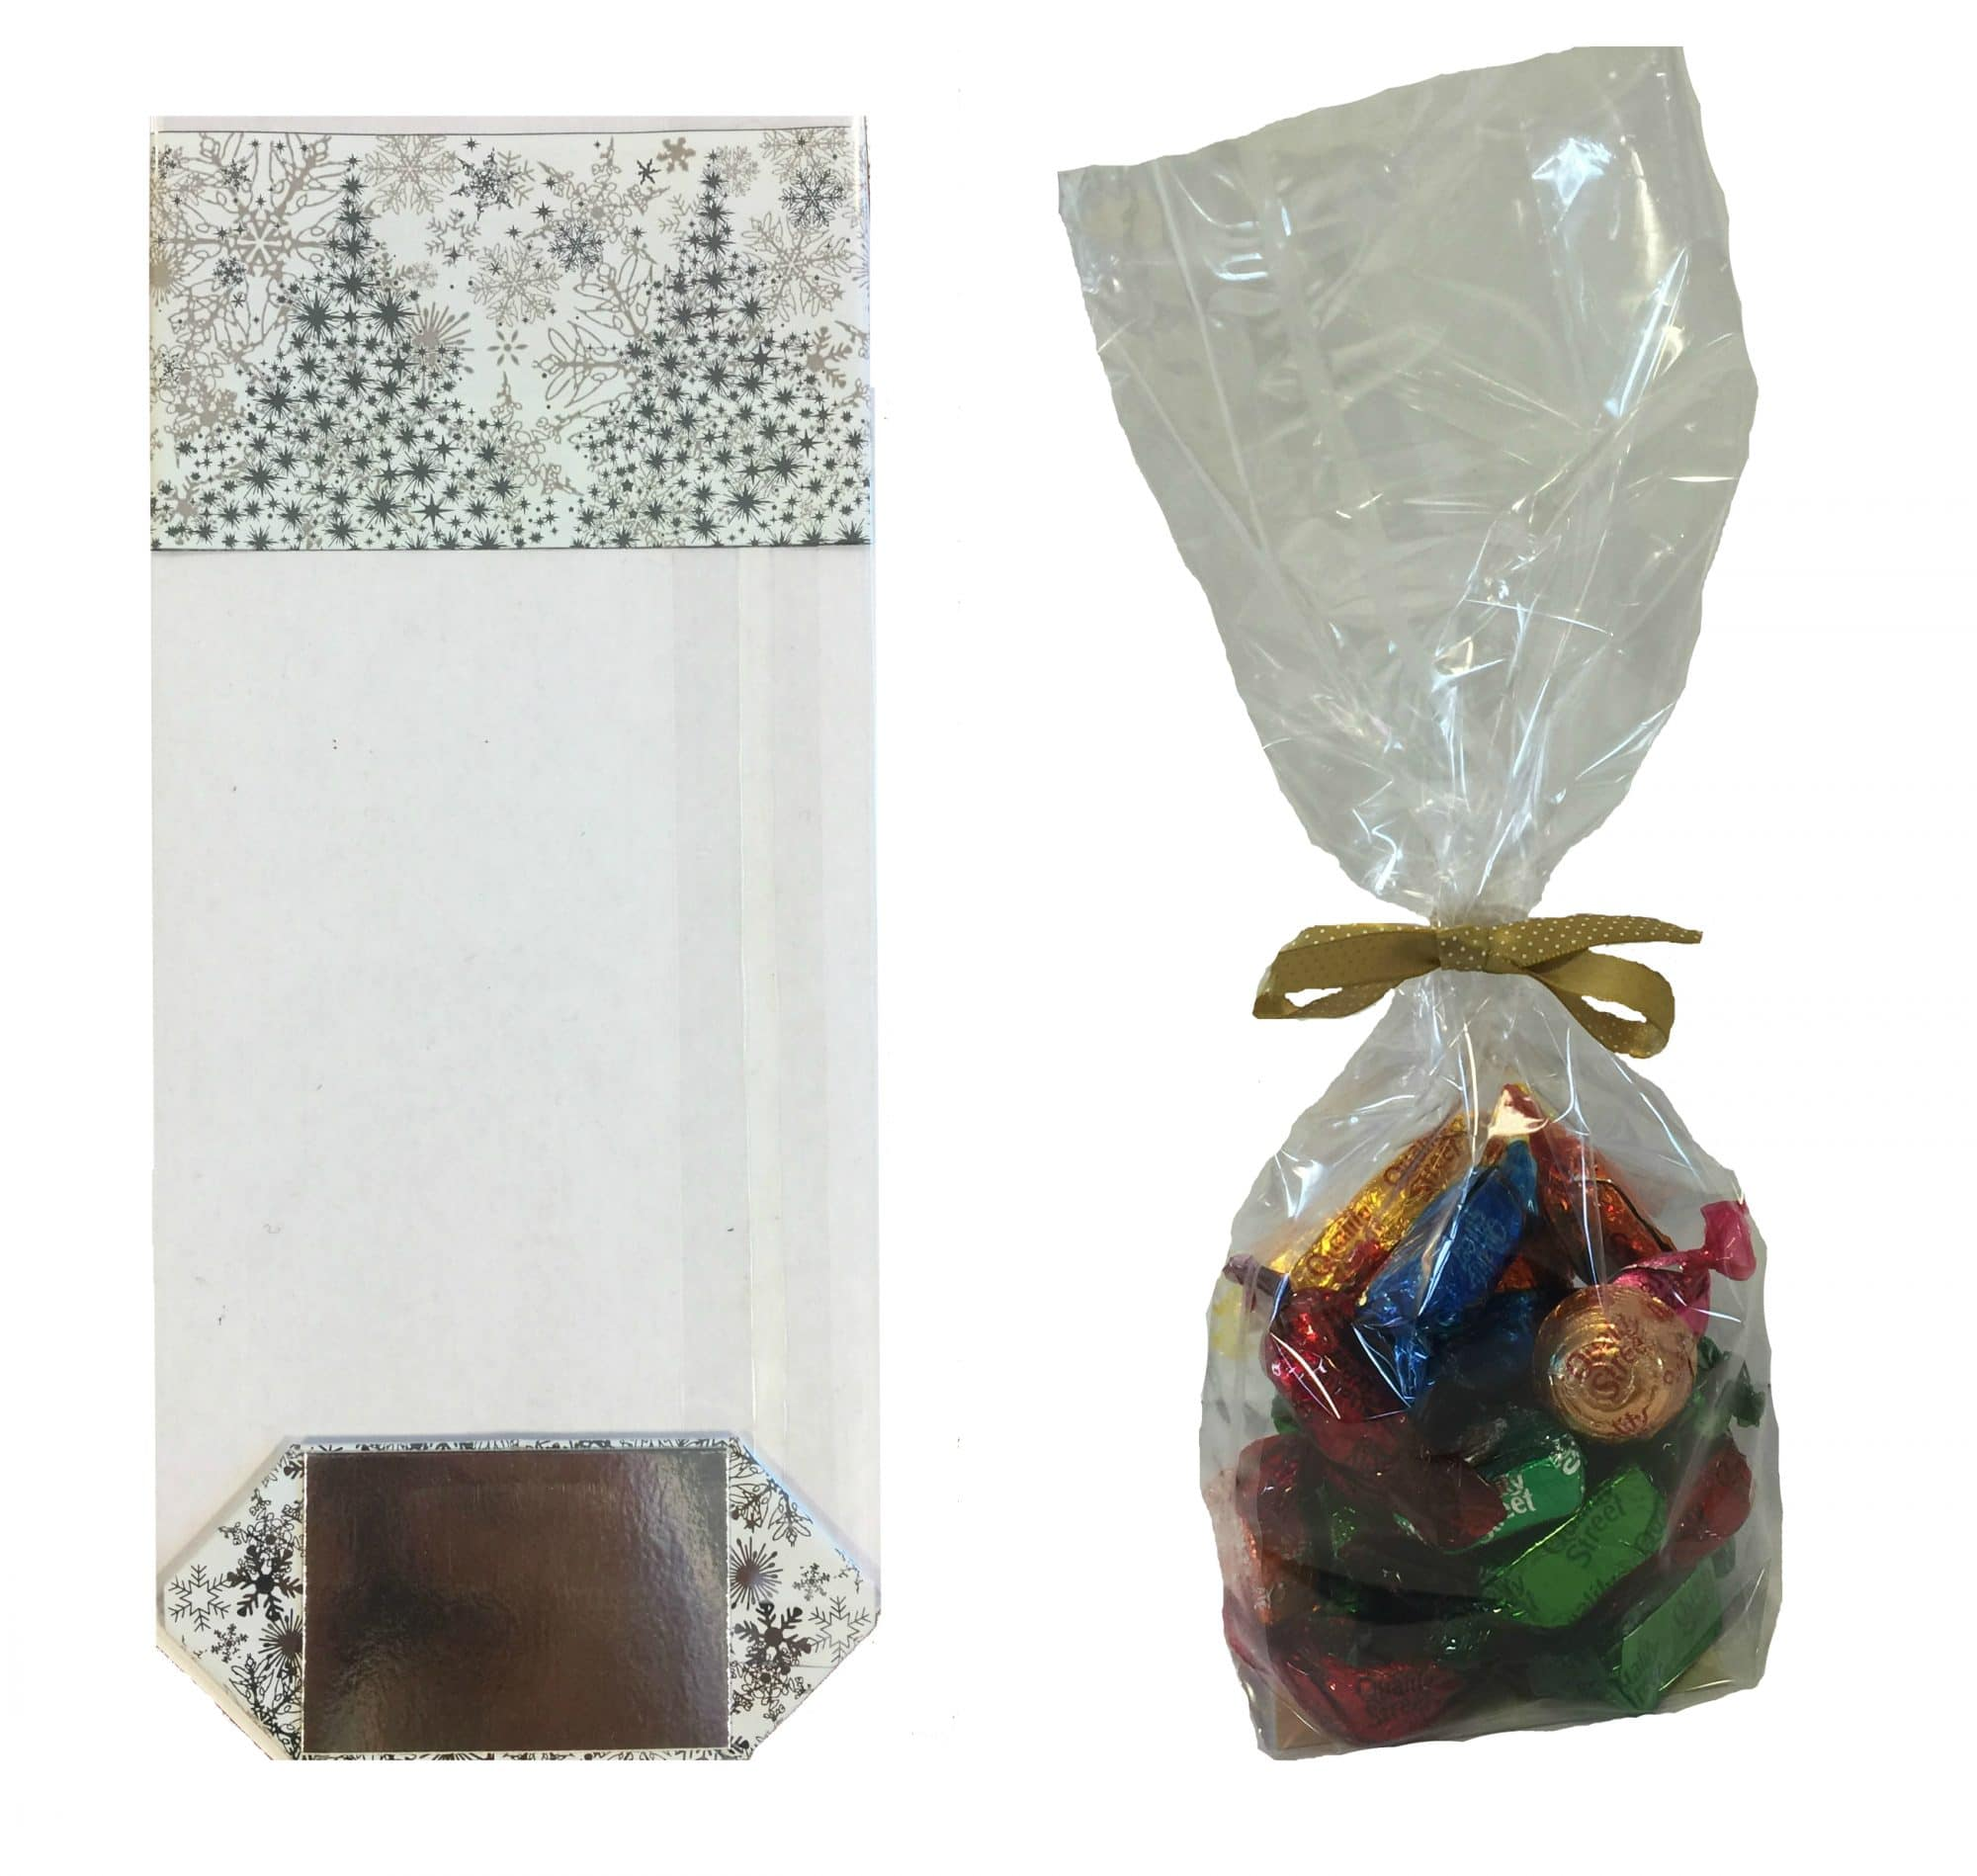 OPP block bottom bags. Custom printed or stock prints. Card base. Stand up card base clear confectionery bag. Food safe. Clear bag for sweets and confectionery. Can be printed with your design. Made from OPP Oriented polyprop.